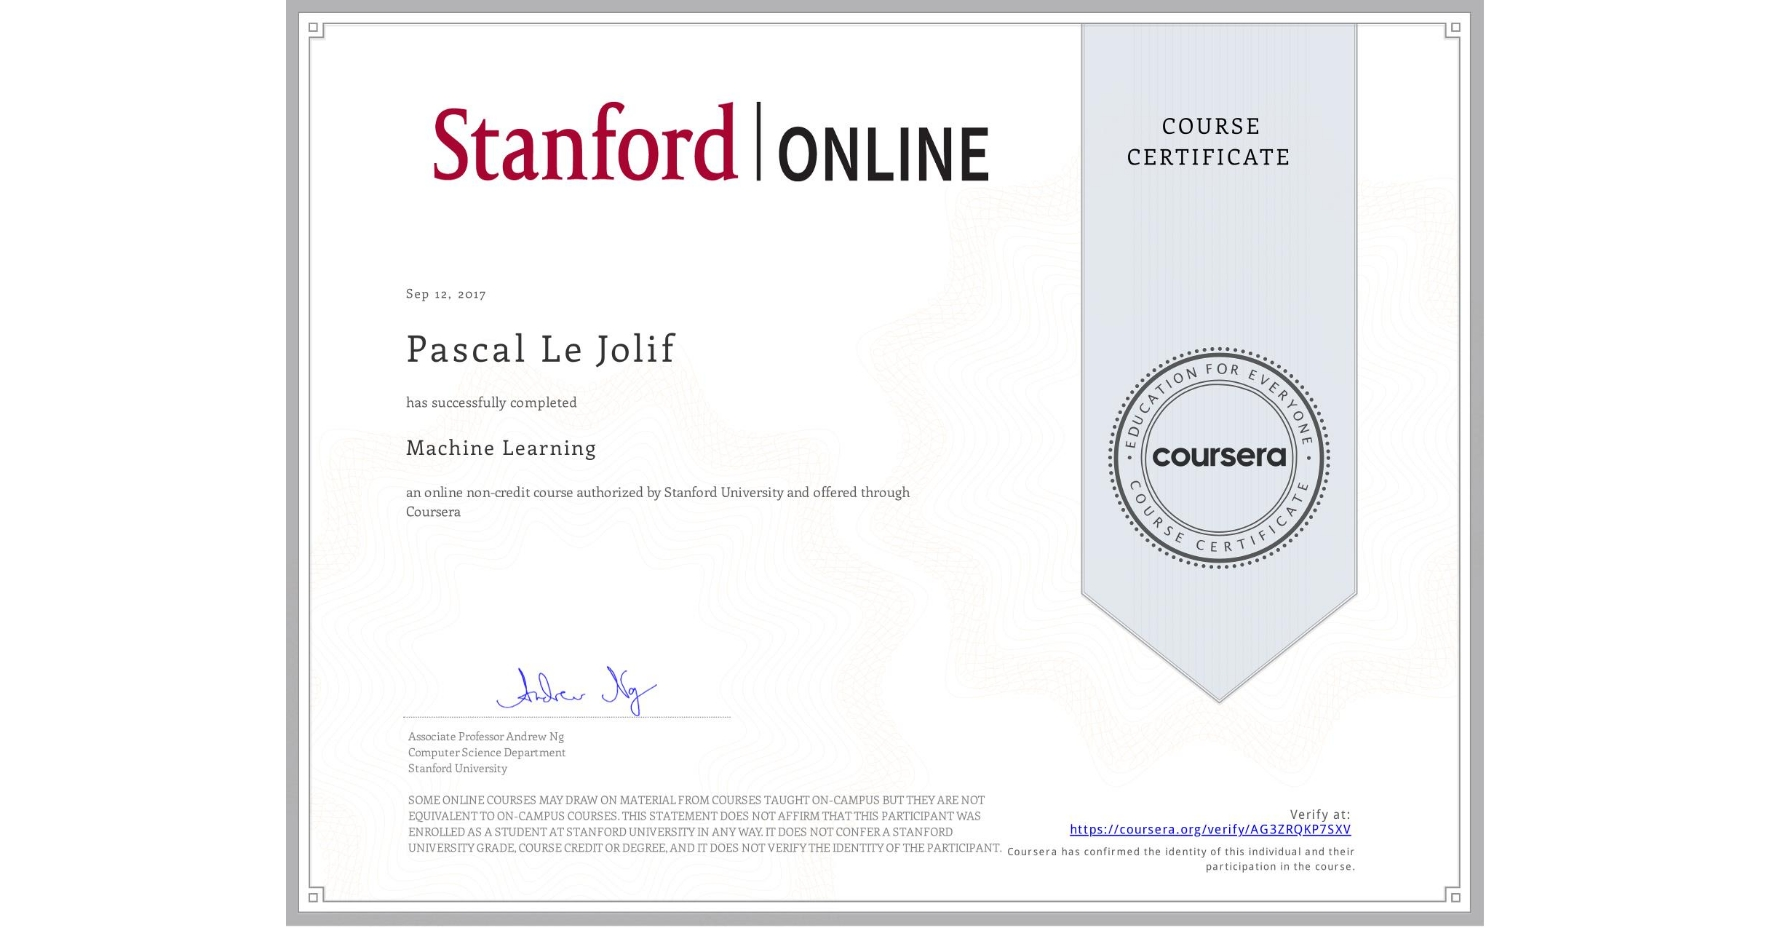 View certificate for Pascal Le Jolif, Machine Learning, an online non-credit course authorized by Stanford University and offered through Coursera